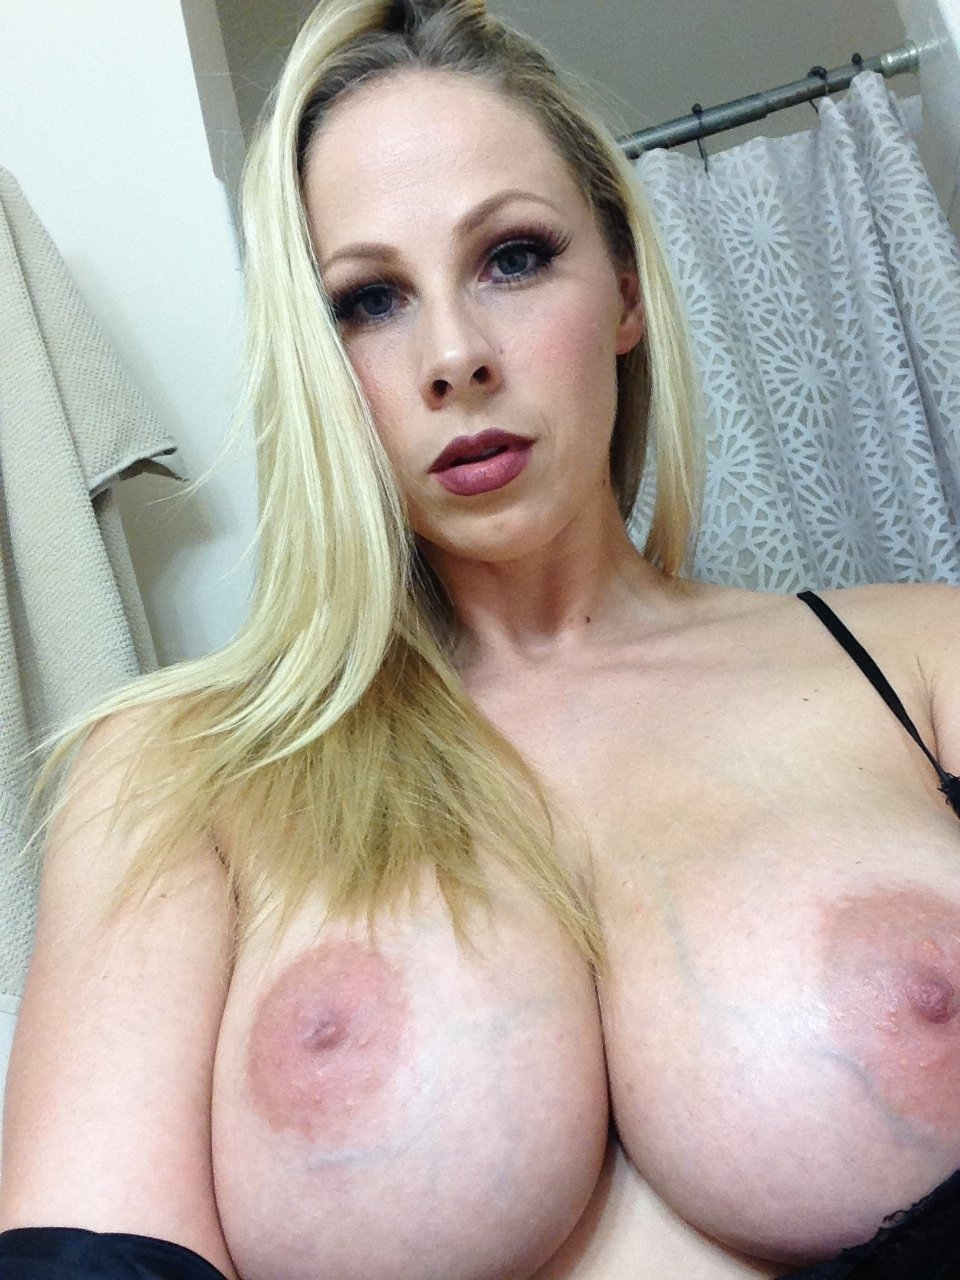 gianna michaels nude